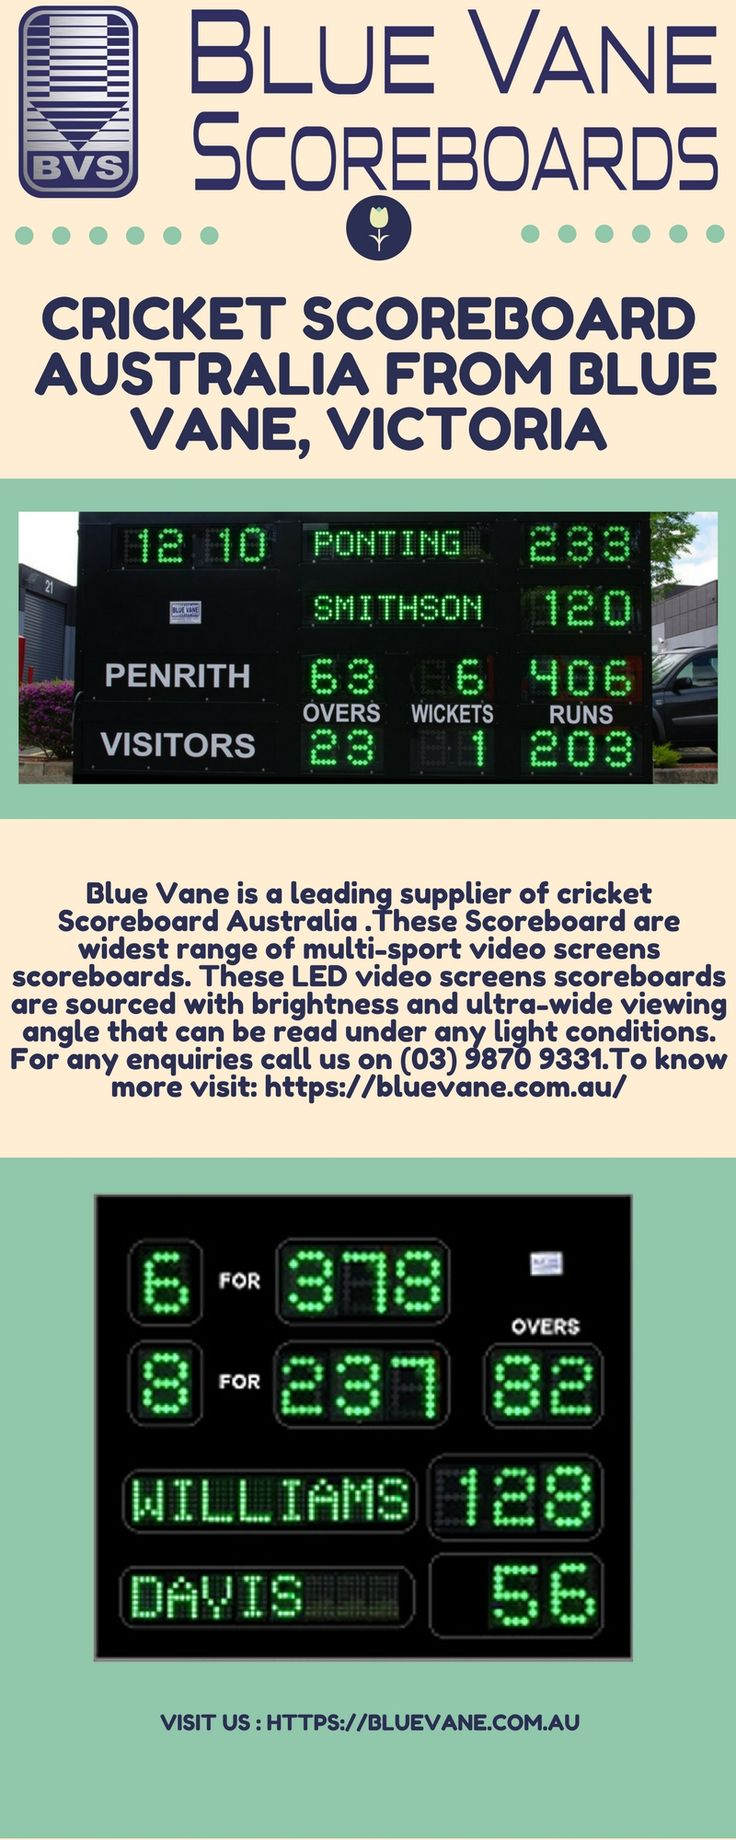 Blue Vane is a leading supplier of Cricket Scoreboard Australia. It is one of the most famous and large business which contains a large collection of indoor and outdoor products and also service installation. For any inquiries call us on (03) 9870 9331.For more details visit: https://bluevane.com.au/